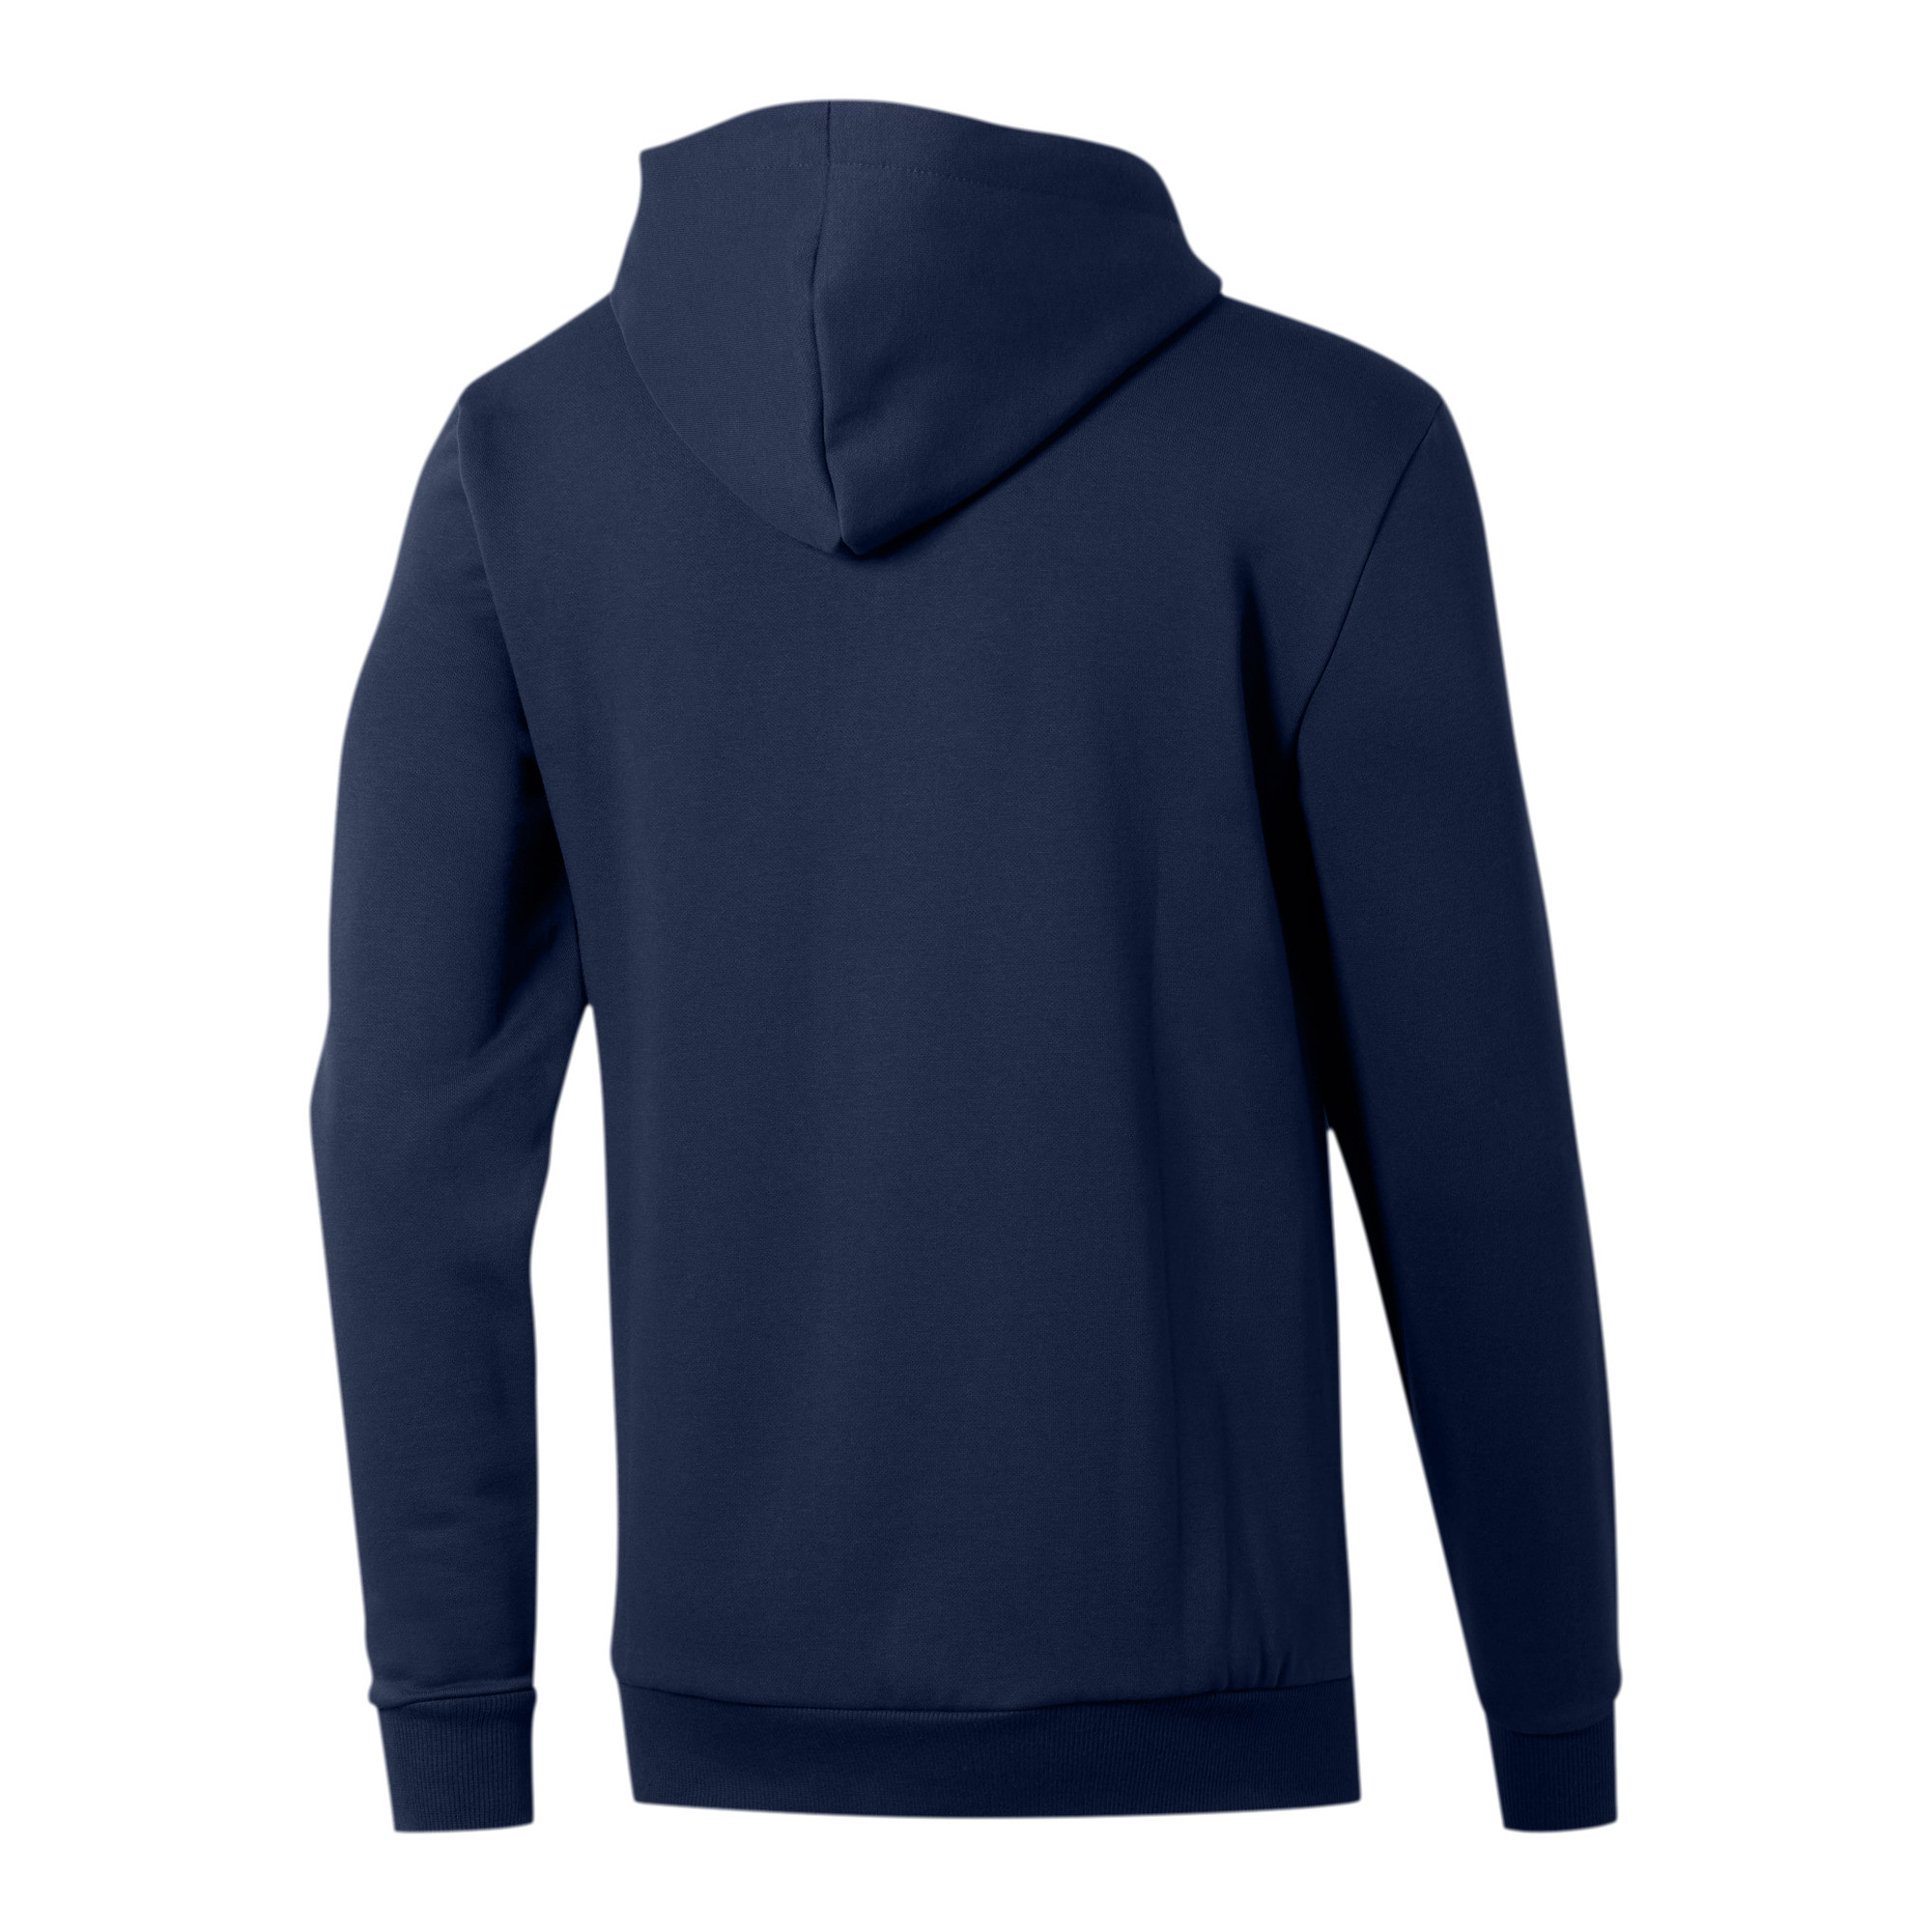 PUMA-Essentials-Men-039-s-Hooded-Fleece-Jacket-Men-Sweat-Basics thumbnail 15